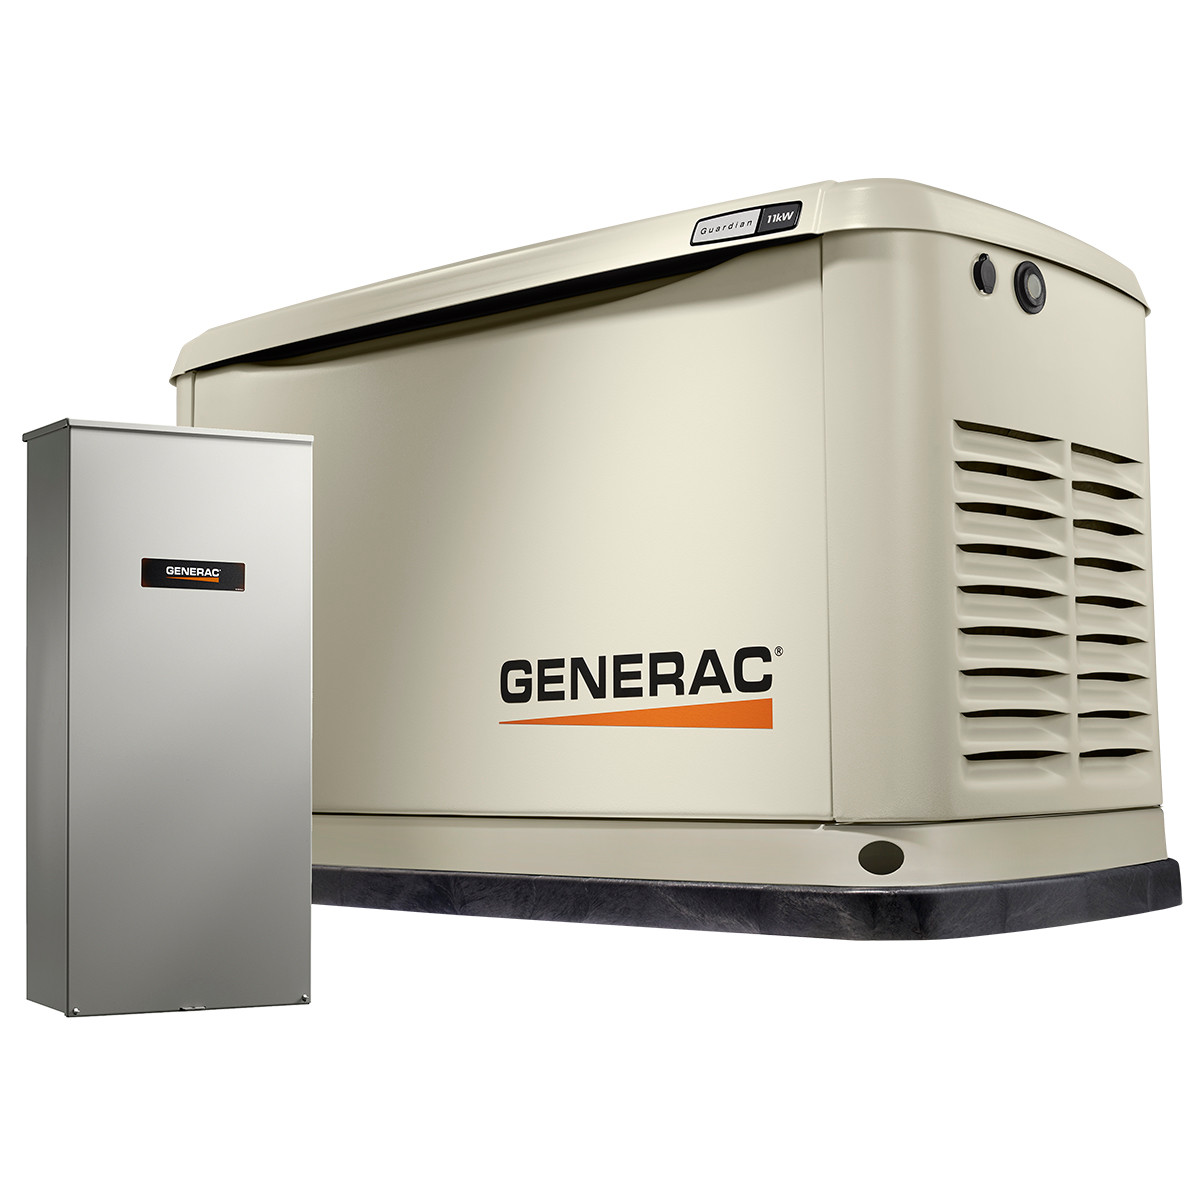 hight resolution of generac guardian 7033 11kw generator with 200a se transfer switch